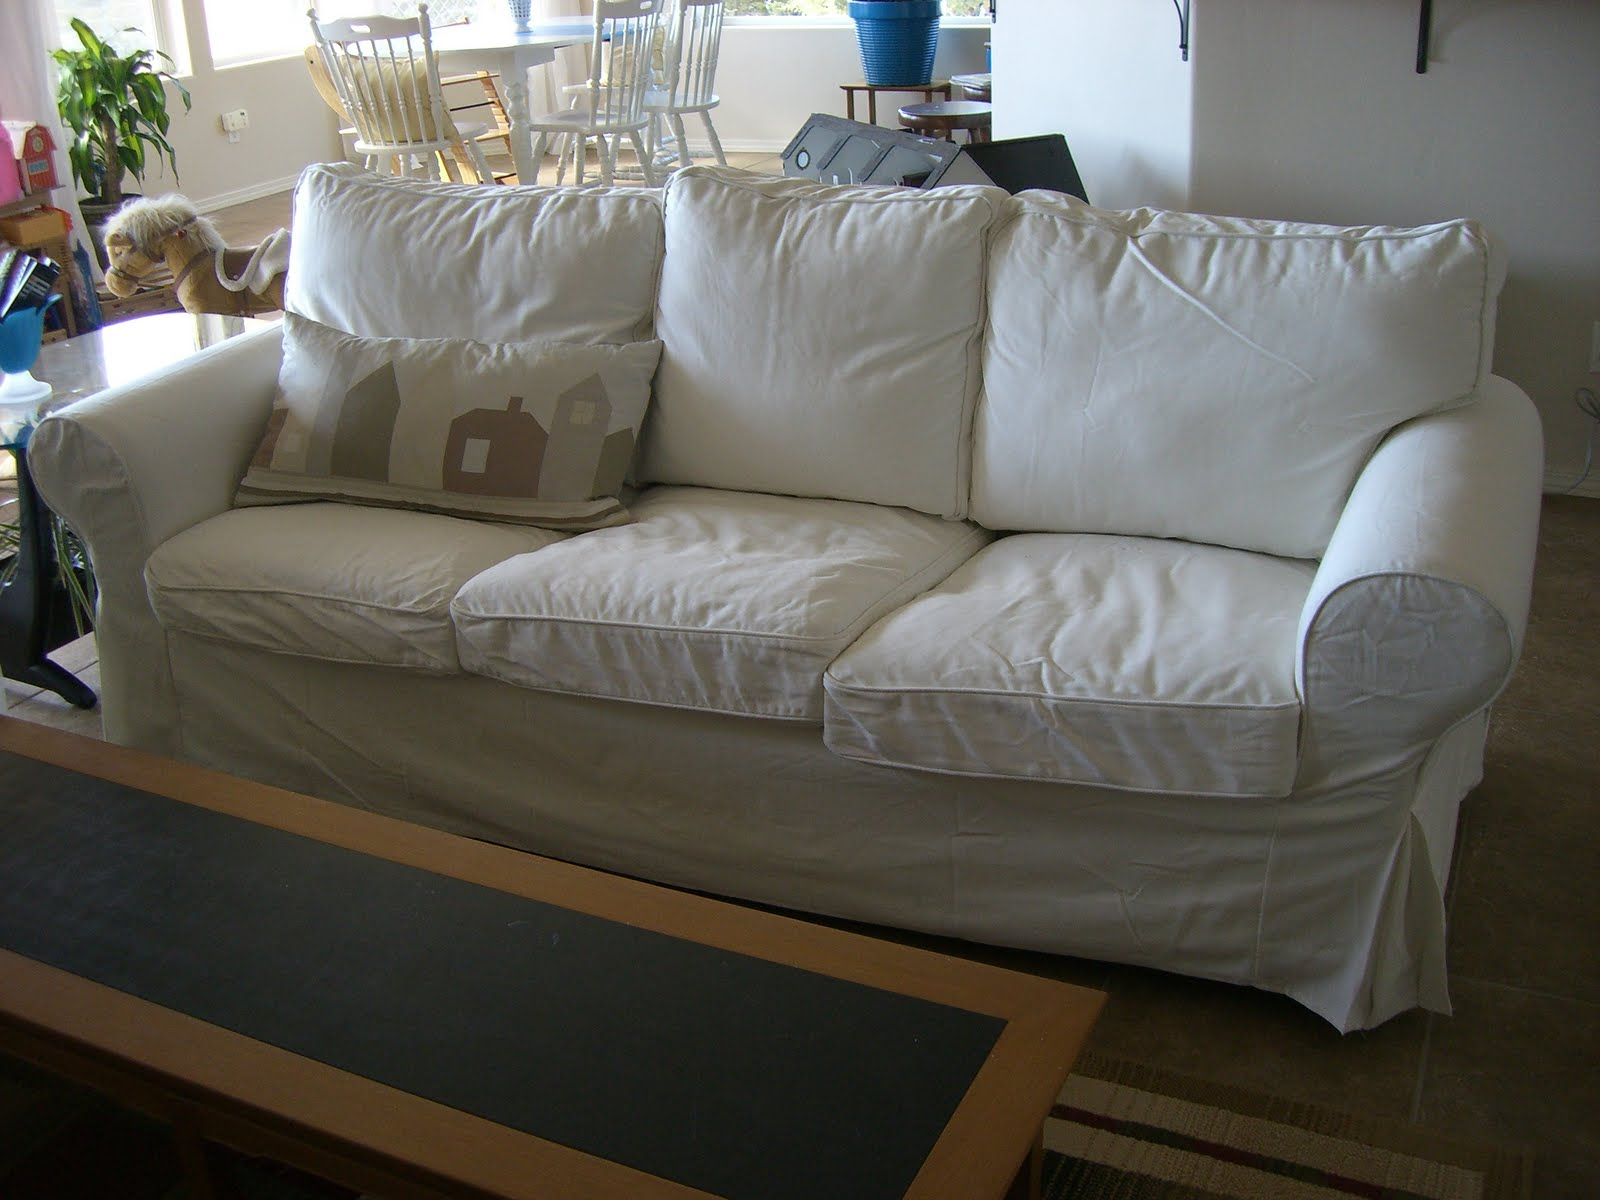 Home Kids Life White Sofas & Children IKEA Ektorp Sofa Review